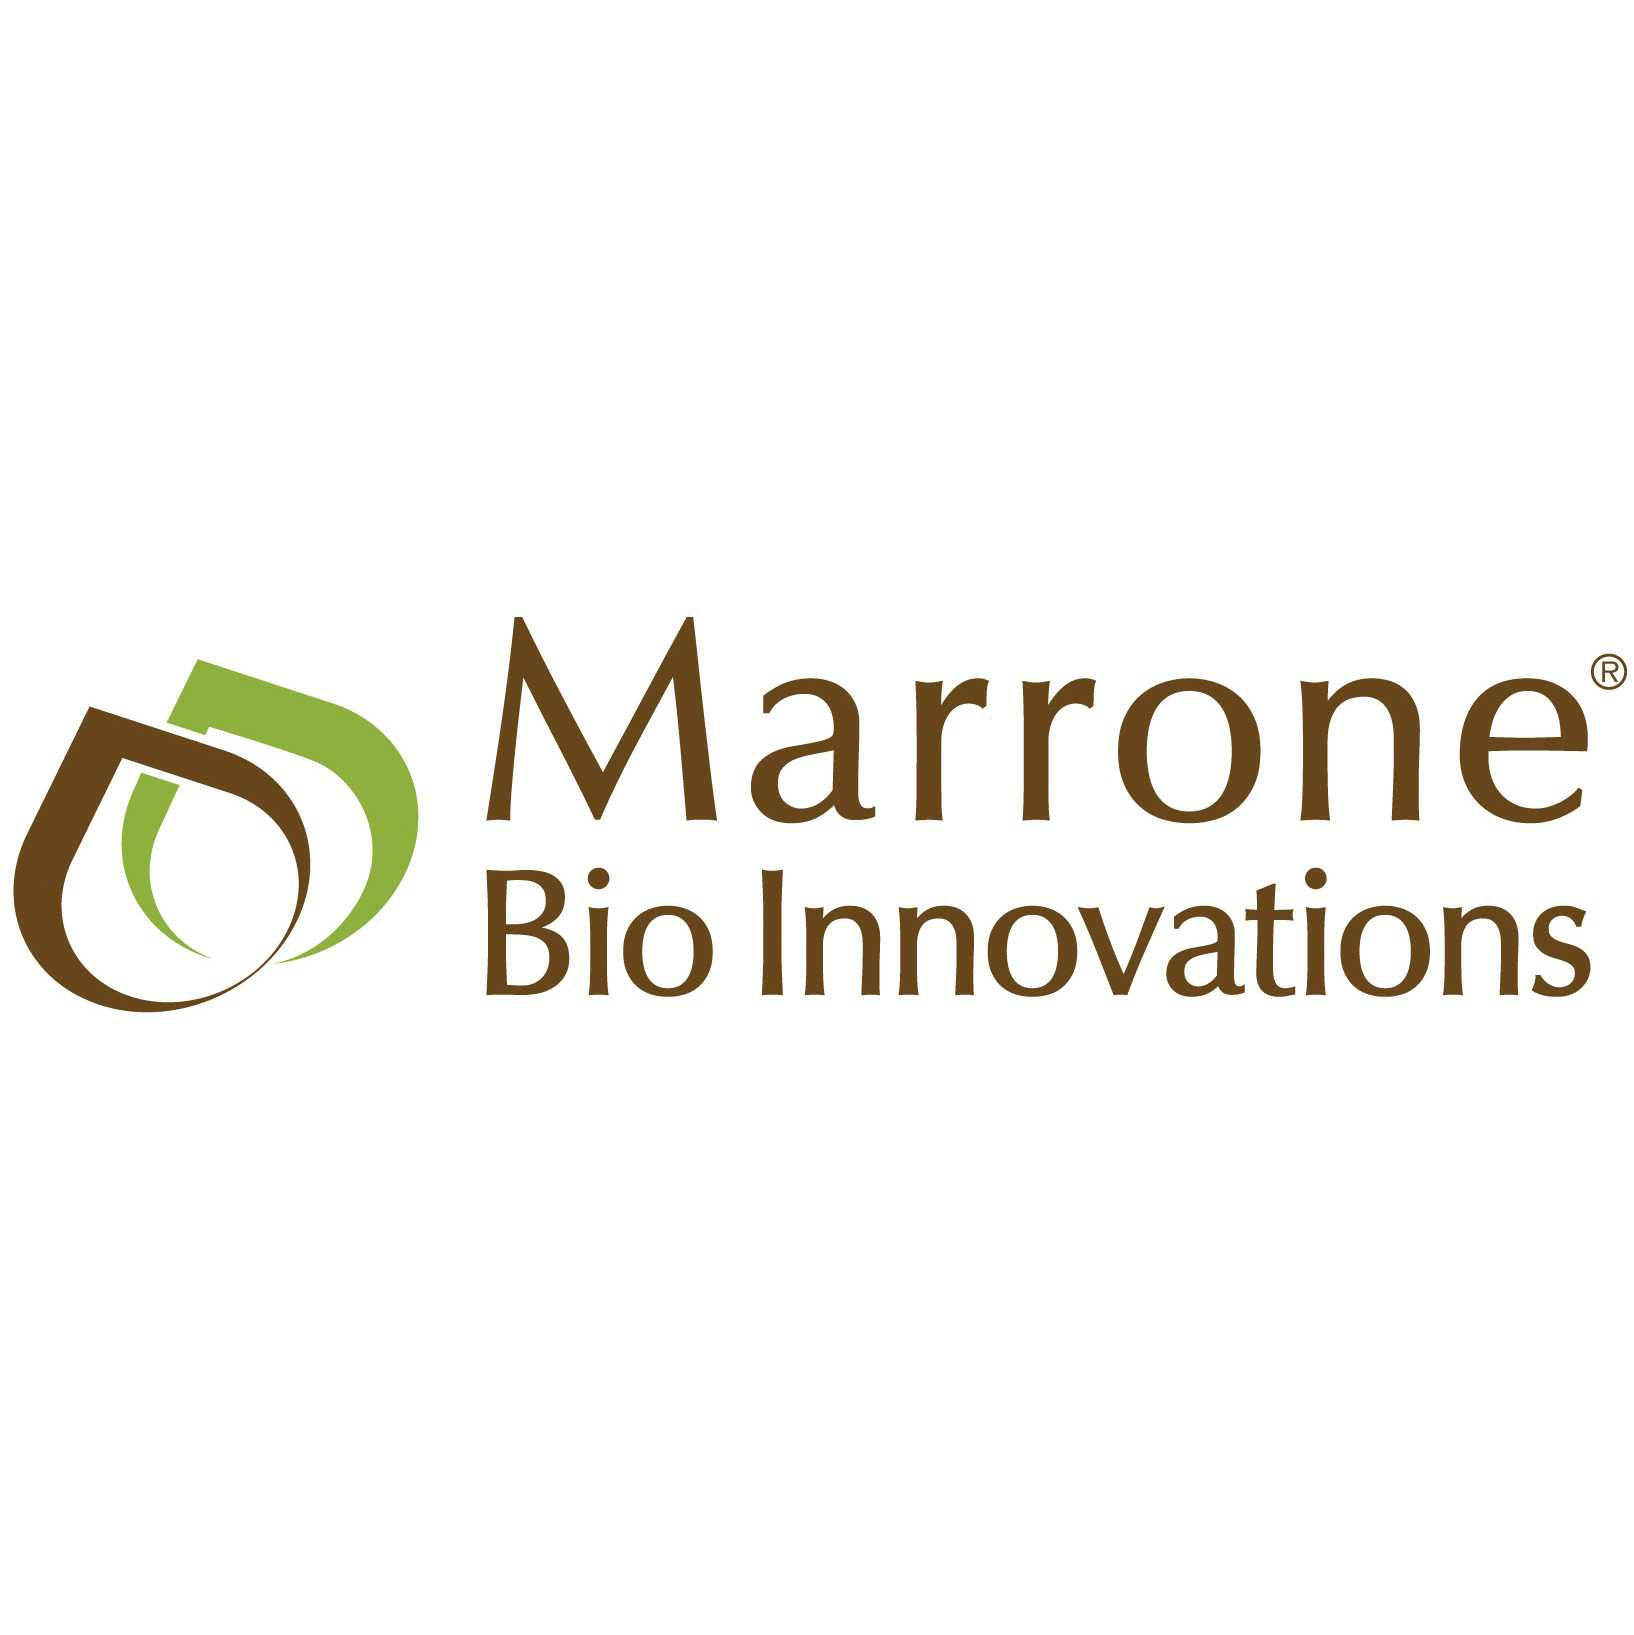 Marrone Bio Innovations Submits New Bioherbicide For EPA Registration